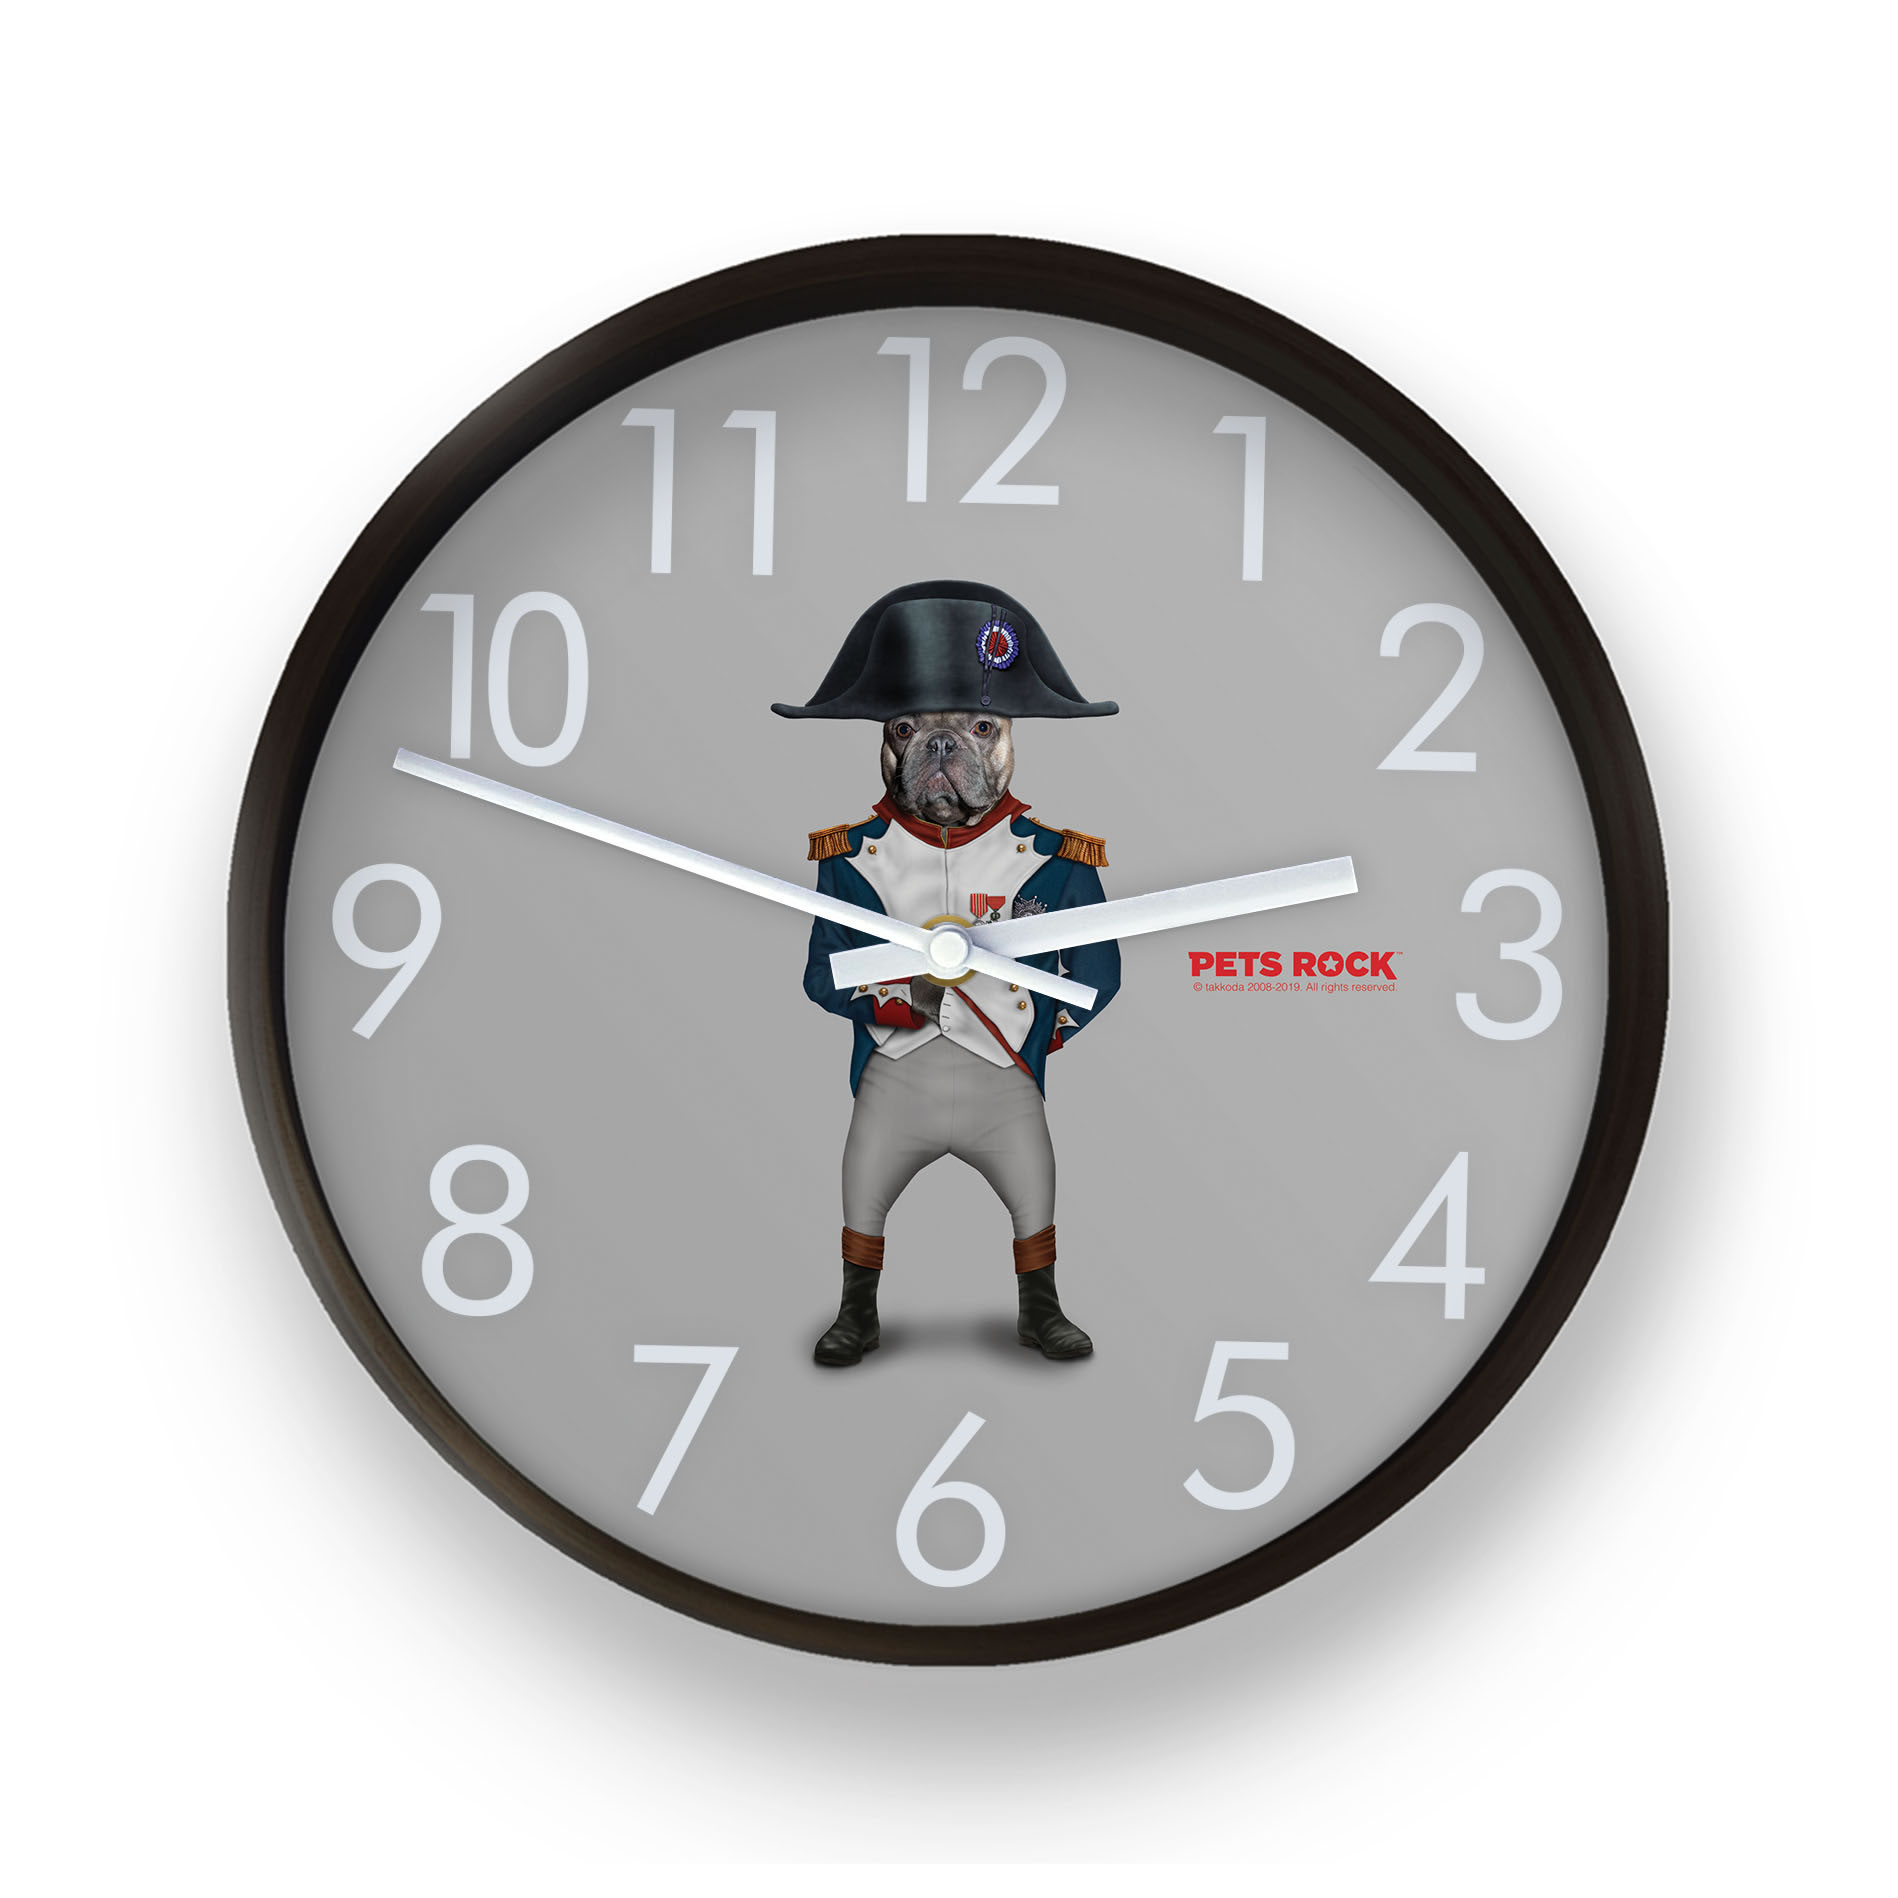 Napoleon Pets Rock Wall Clock